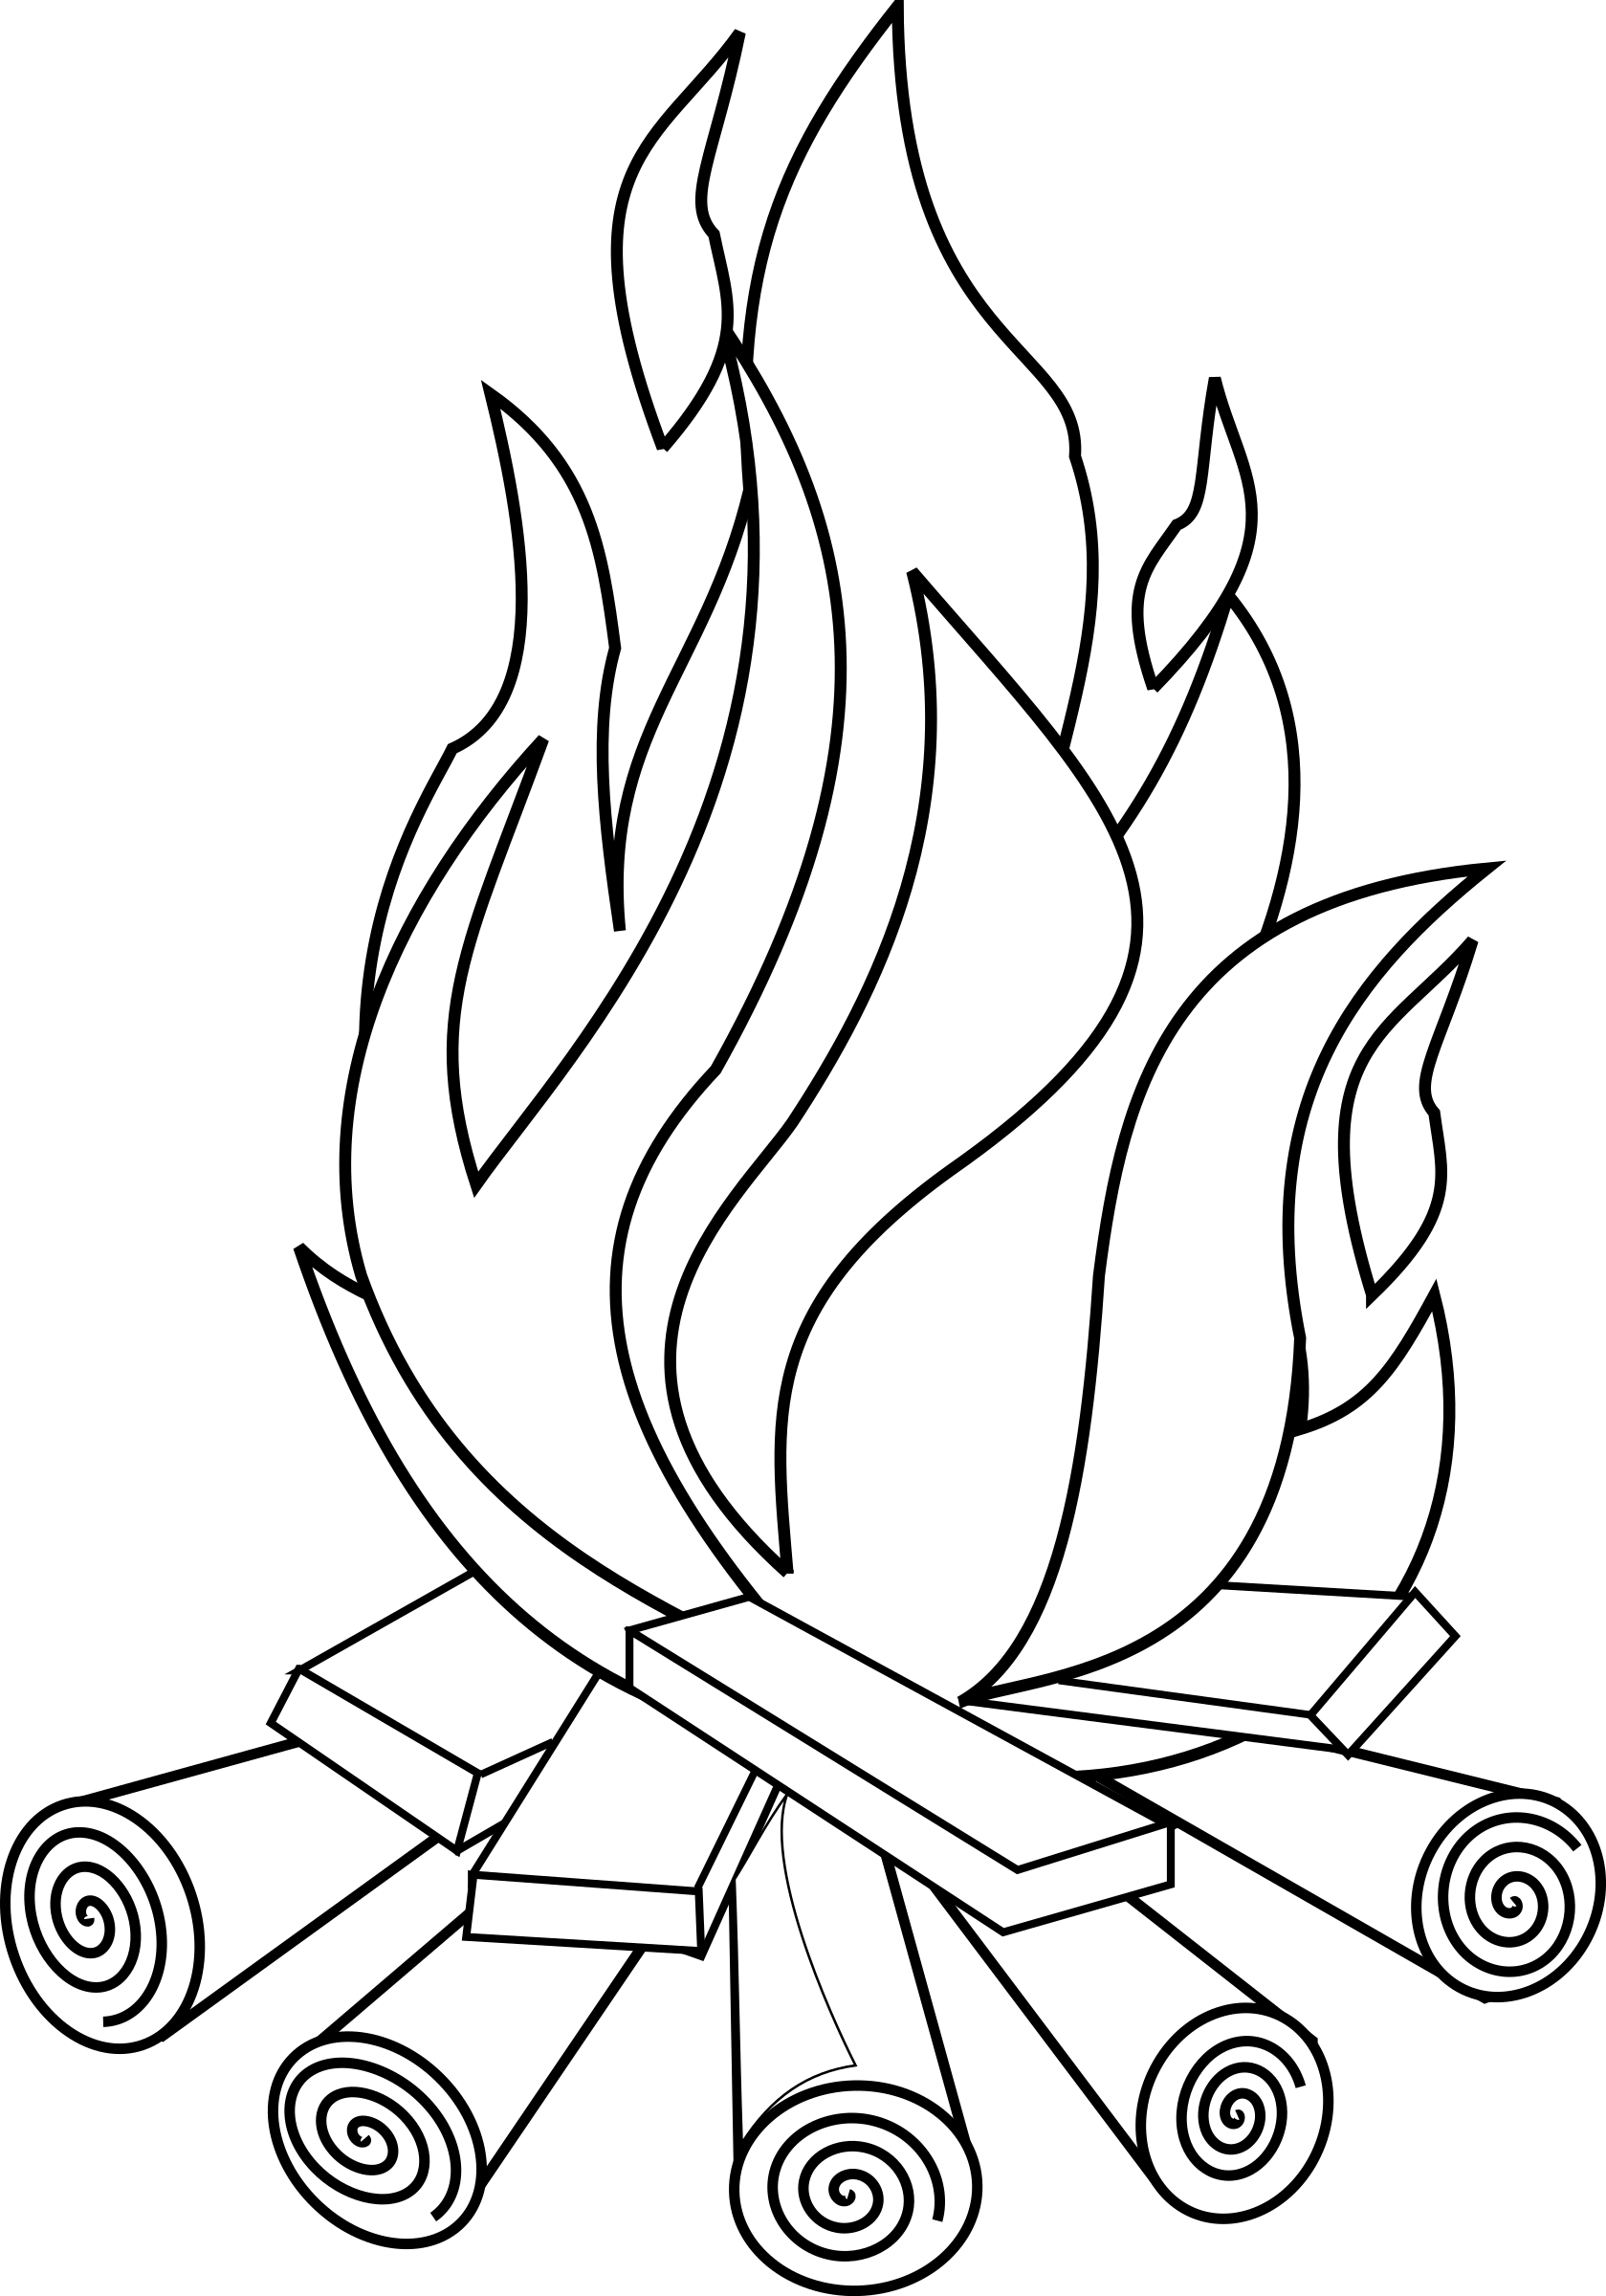 Fire dog clipart black and white clip art transparent library Fire Line Drawing at GetDrawings.com | Free for personal use Fire ... clip art transparent library